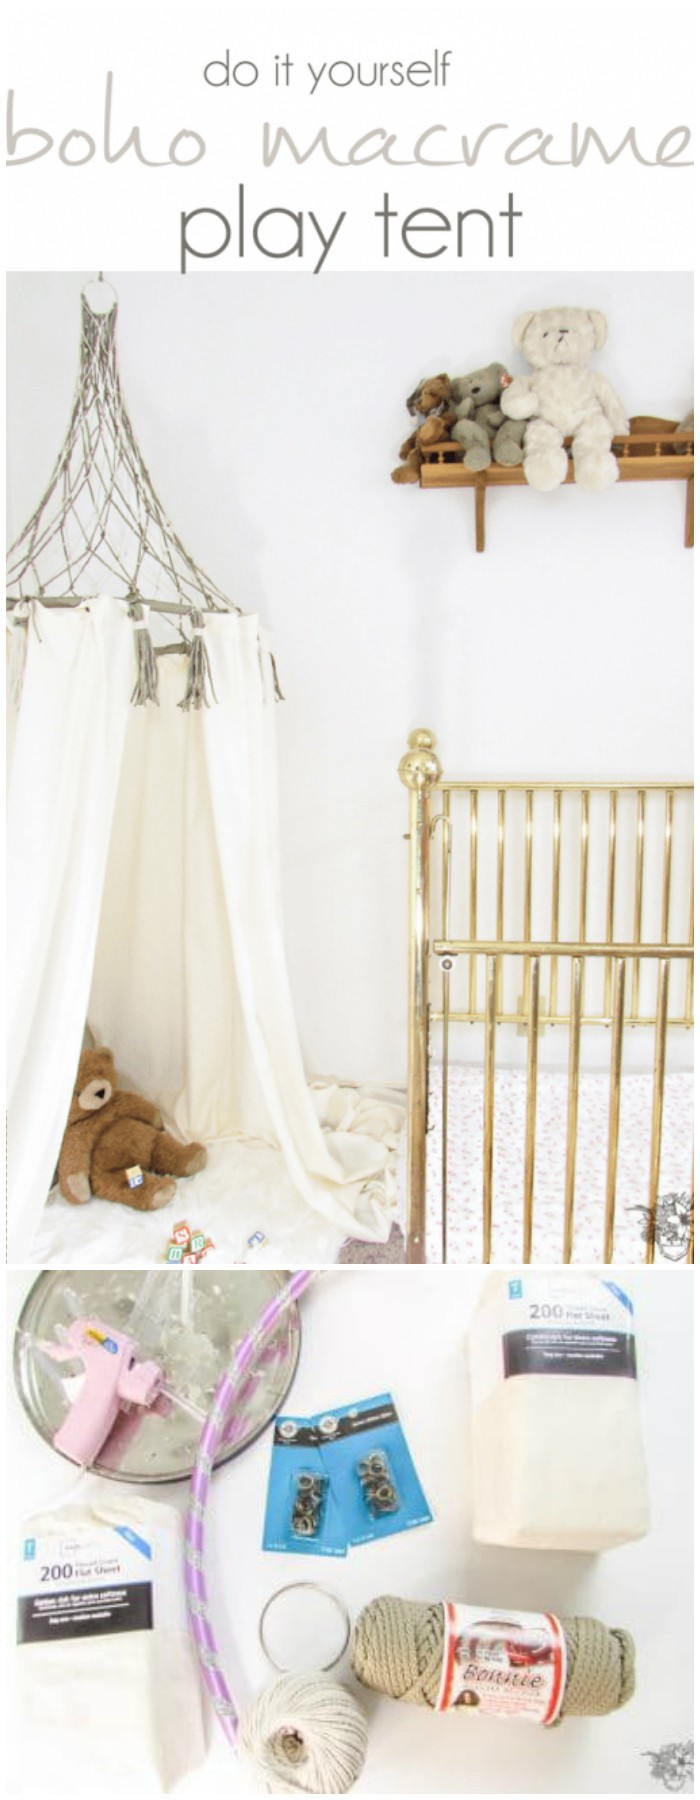 DIY Boho Macrame Play Tent DIY Bed Canopy Ideas Without Spending A Lot